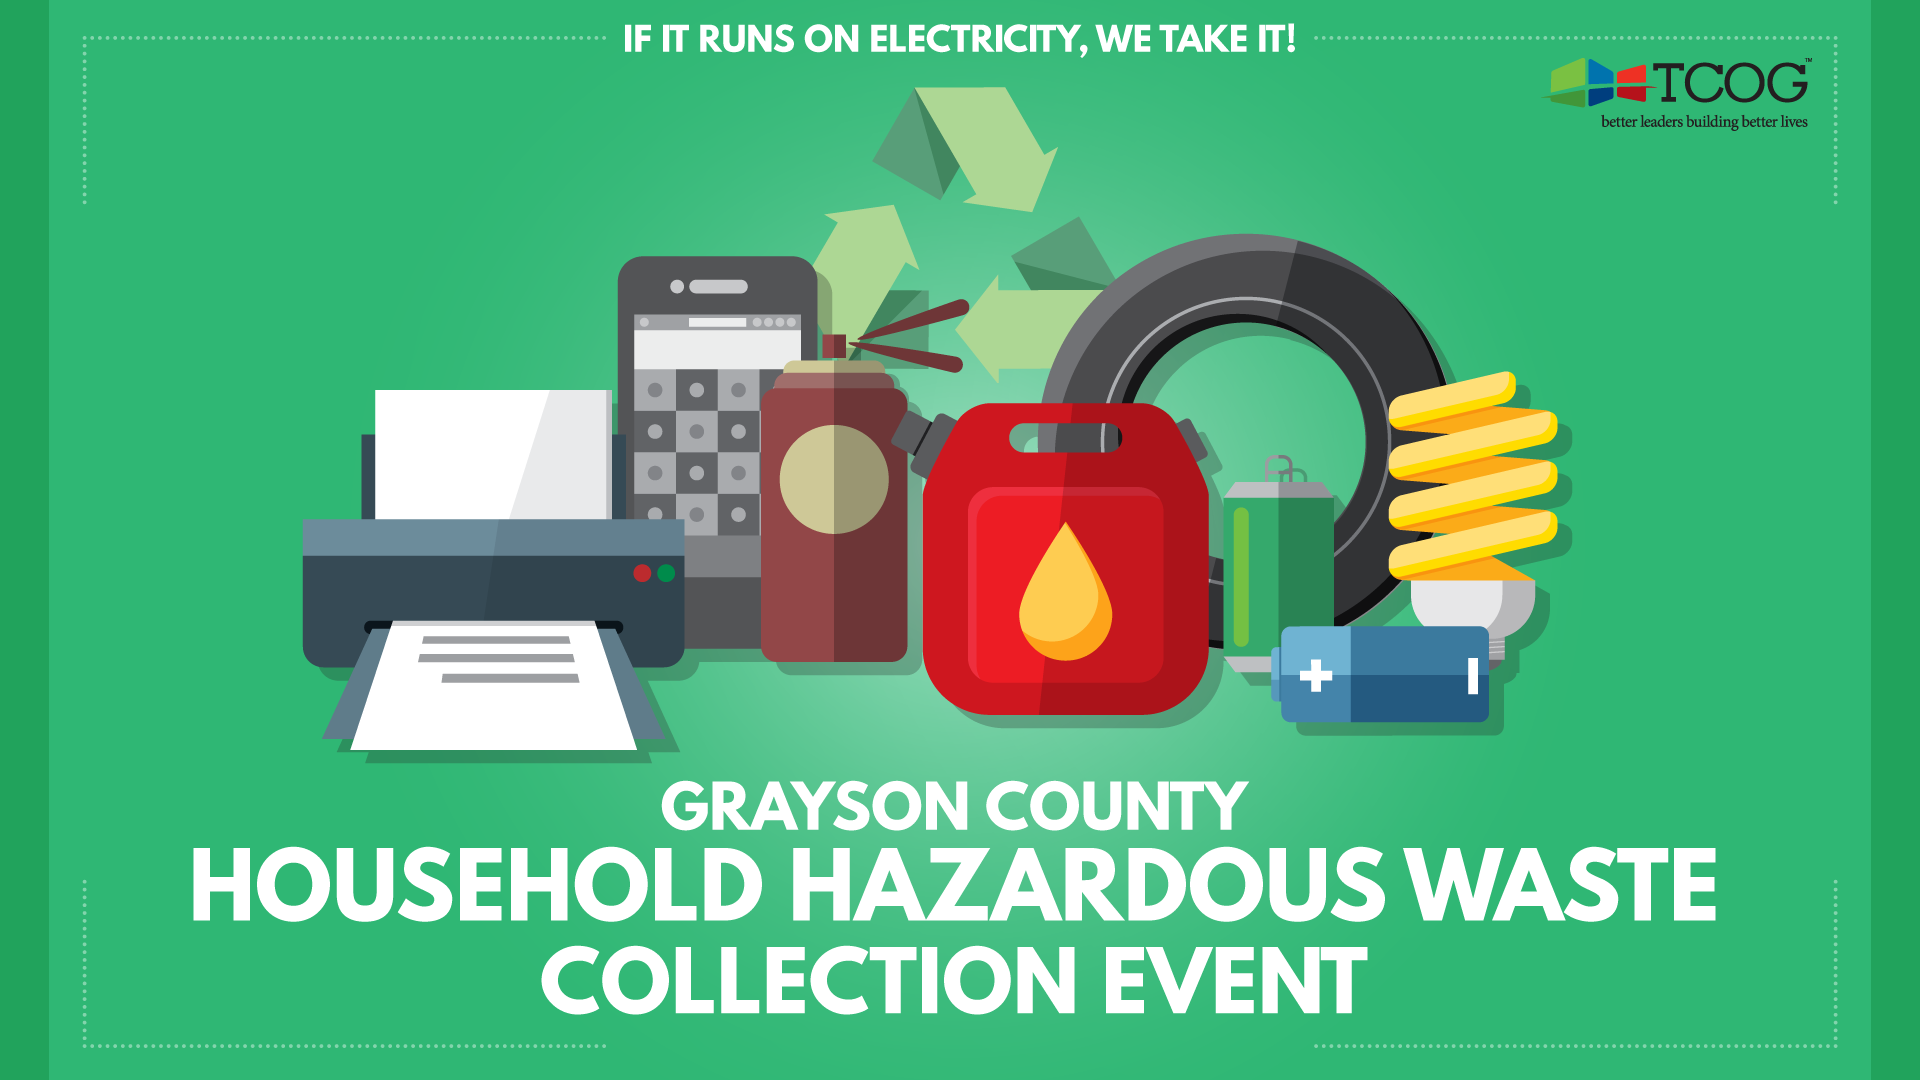 2017 Grayson County Household Hazardous Waste Collection Event